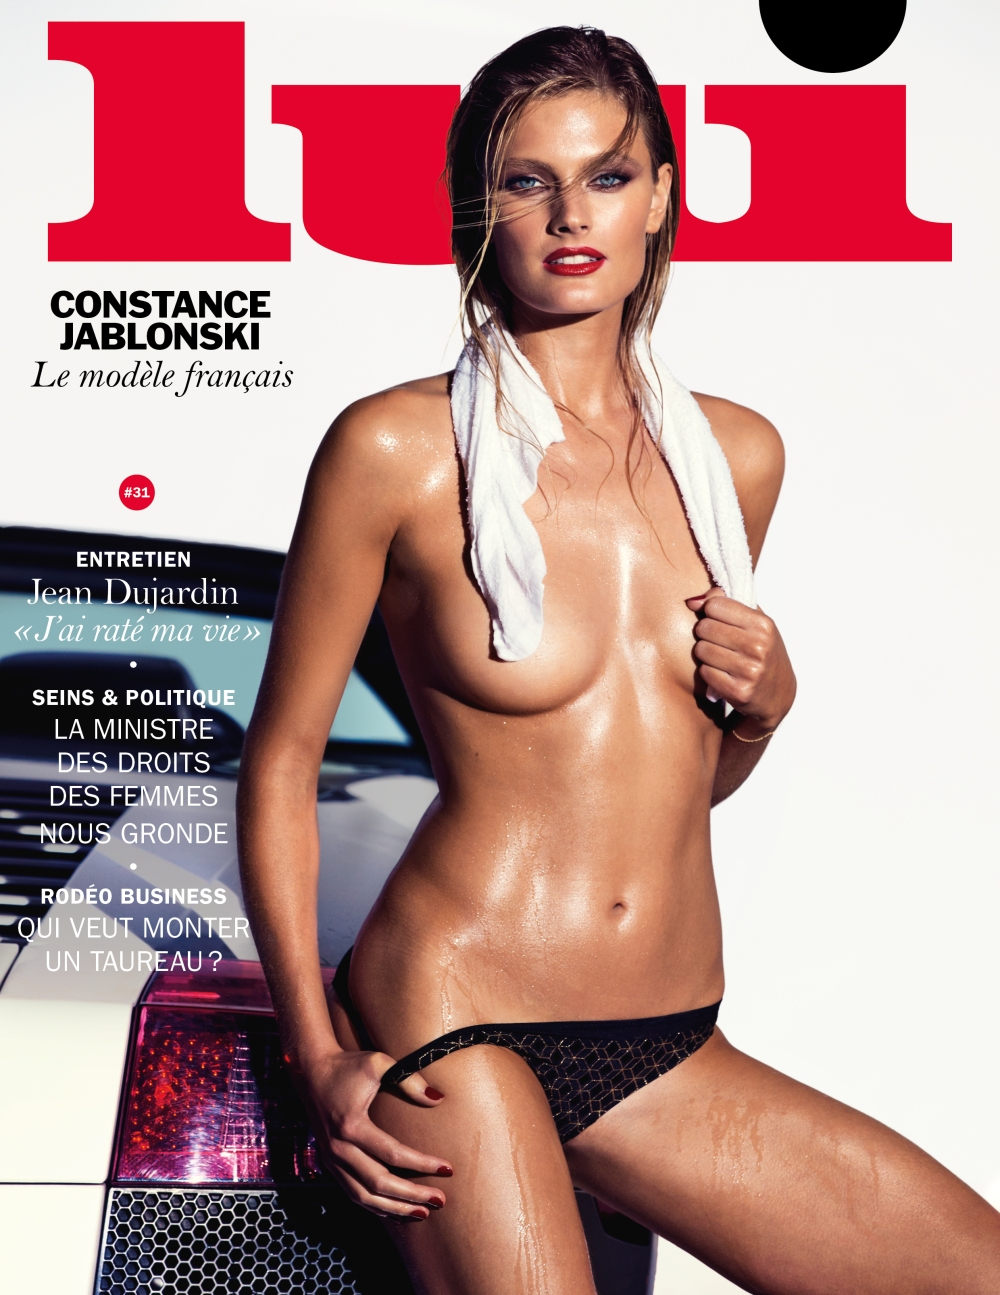 constance-jablonski-cover-for-lui-magzine-photographed-by-david-bellemere-october-2016-1